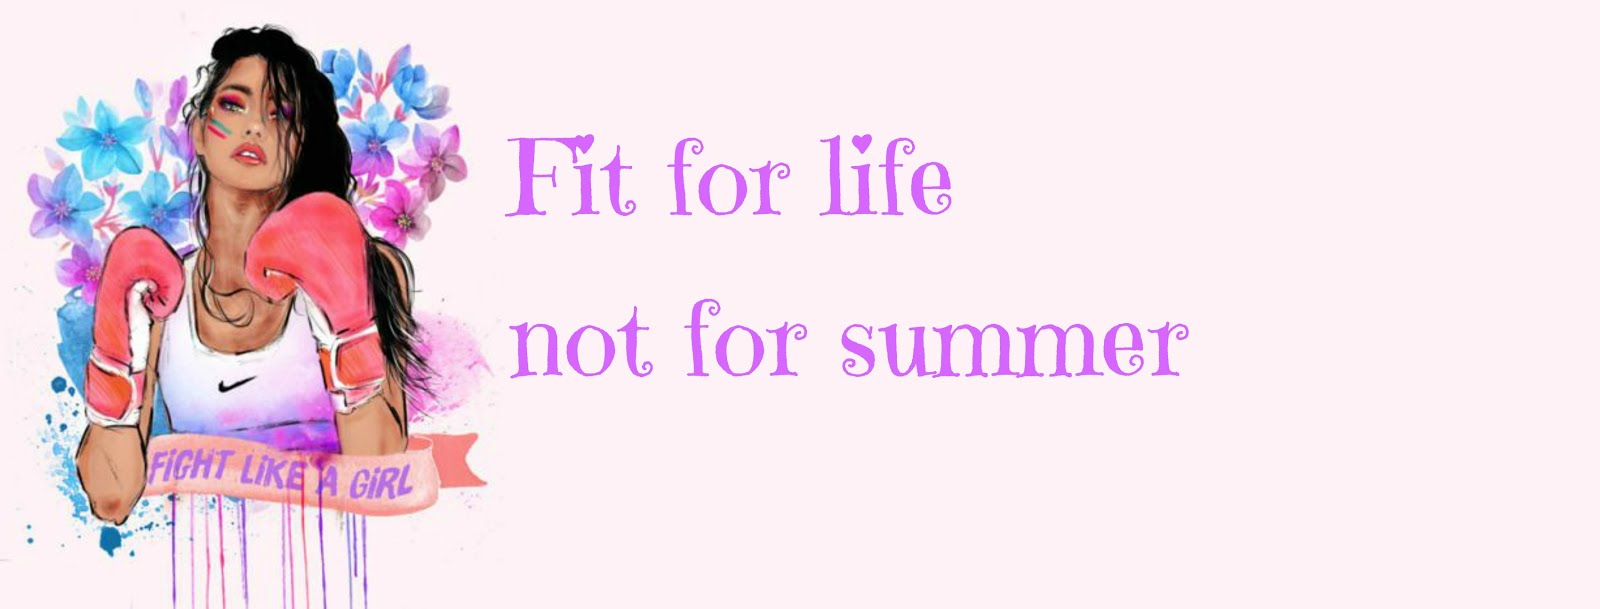 Fit for life not for summer